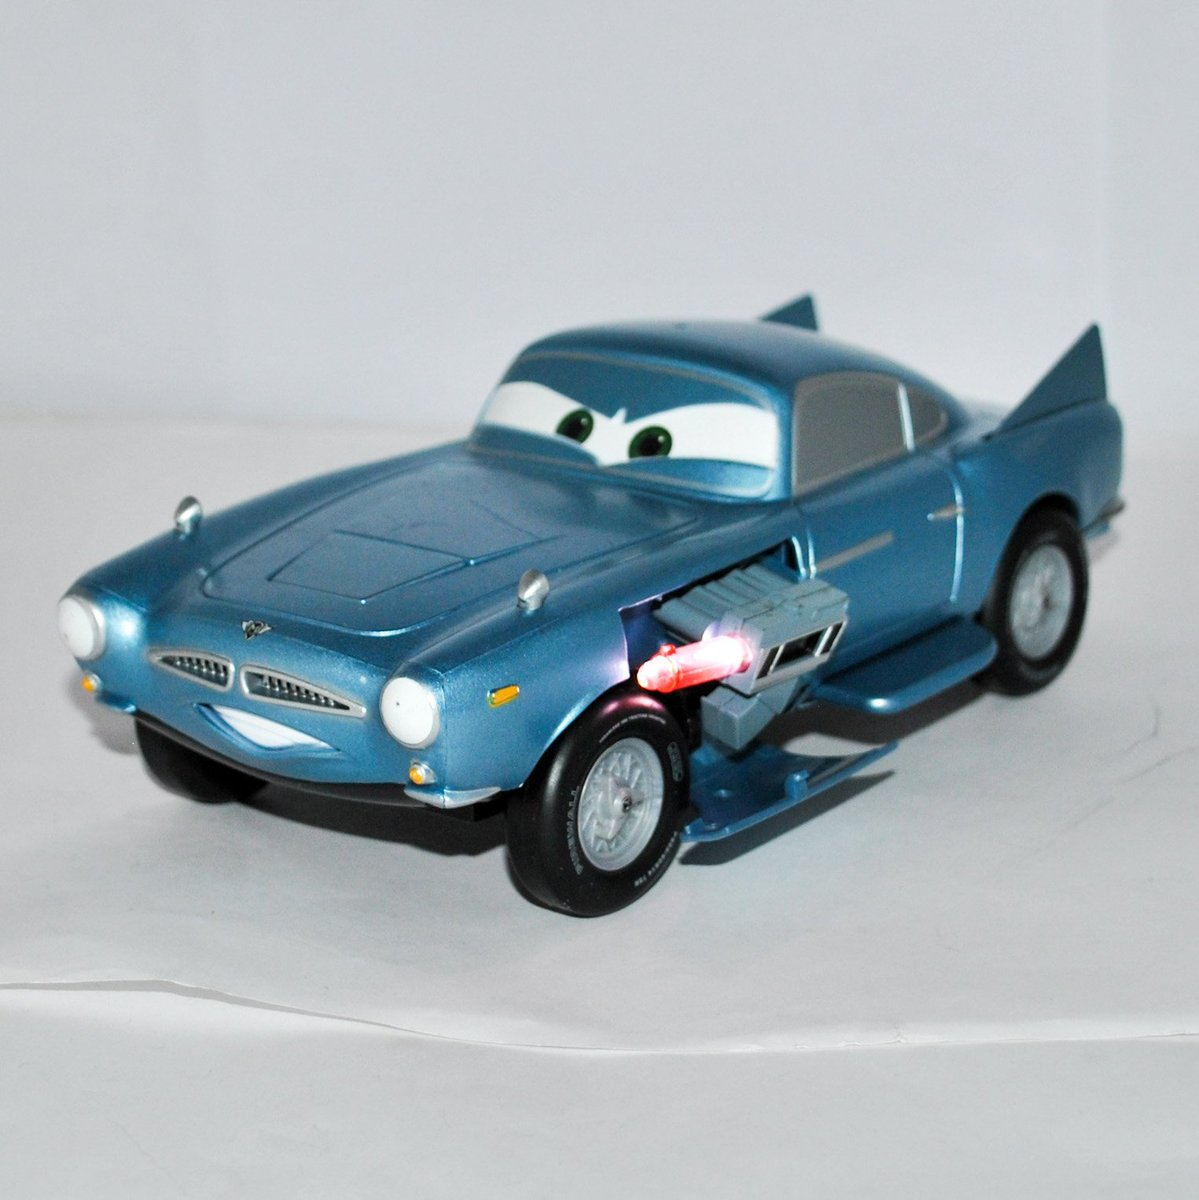 C T Toys Collectables On Twitter Check Out This Disney Pixar Cars 2 Transforming Finn Mcmissile Car With Working Light Up Machine Guns From 2011 Https T Co 95q6cgdgiq Via Ebay Uk Disney Pixar Cars2 Finnmcmissile